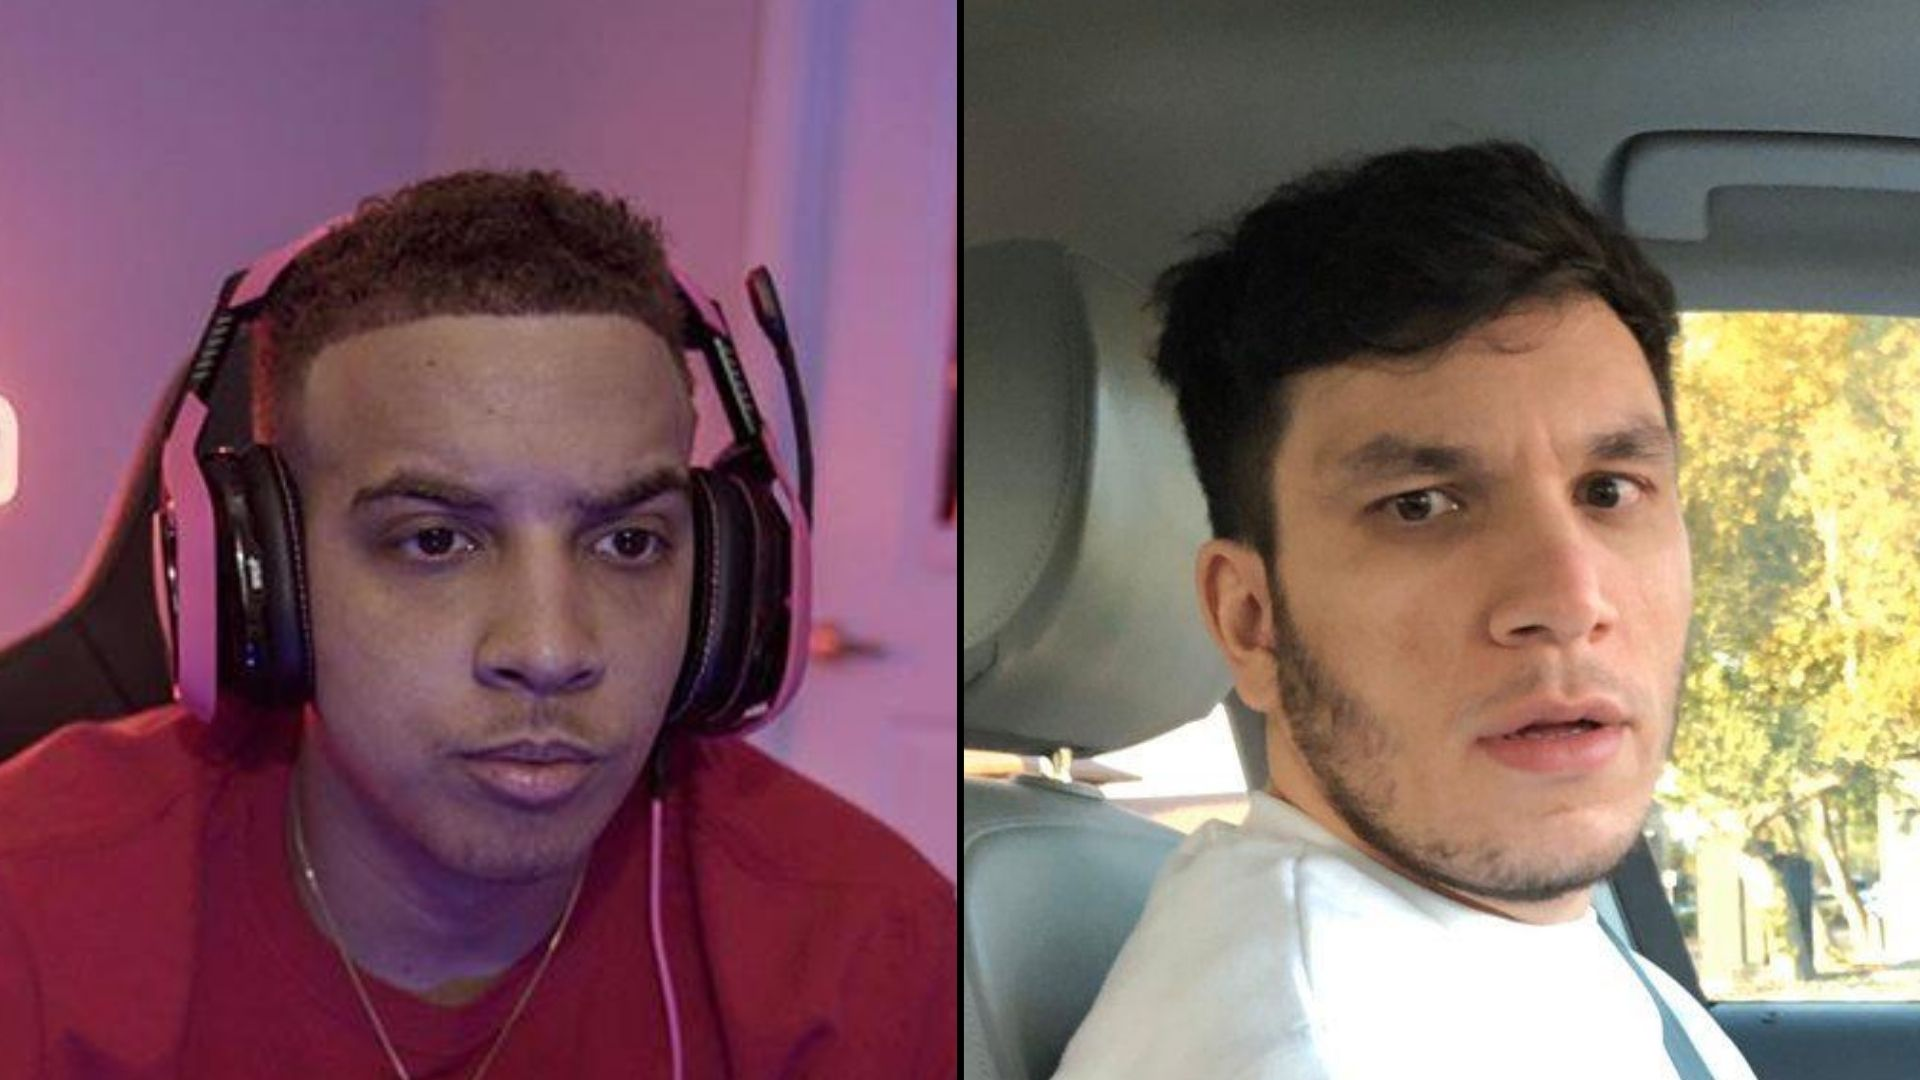 faze swagg trainwrecks